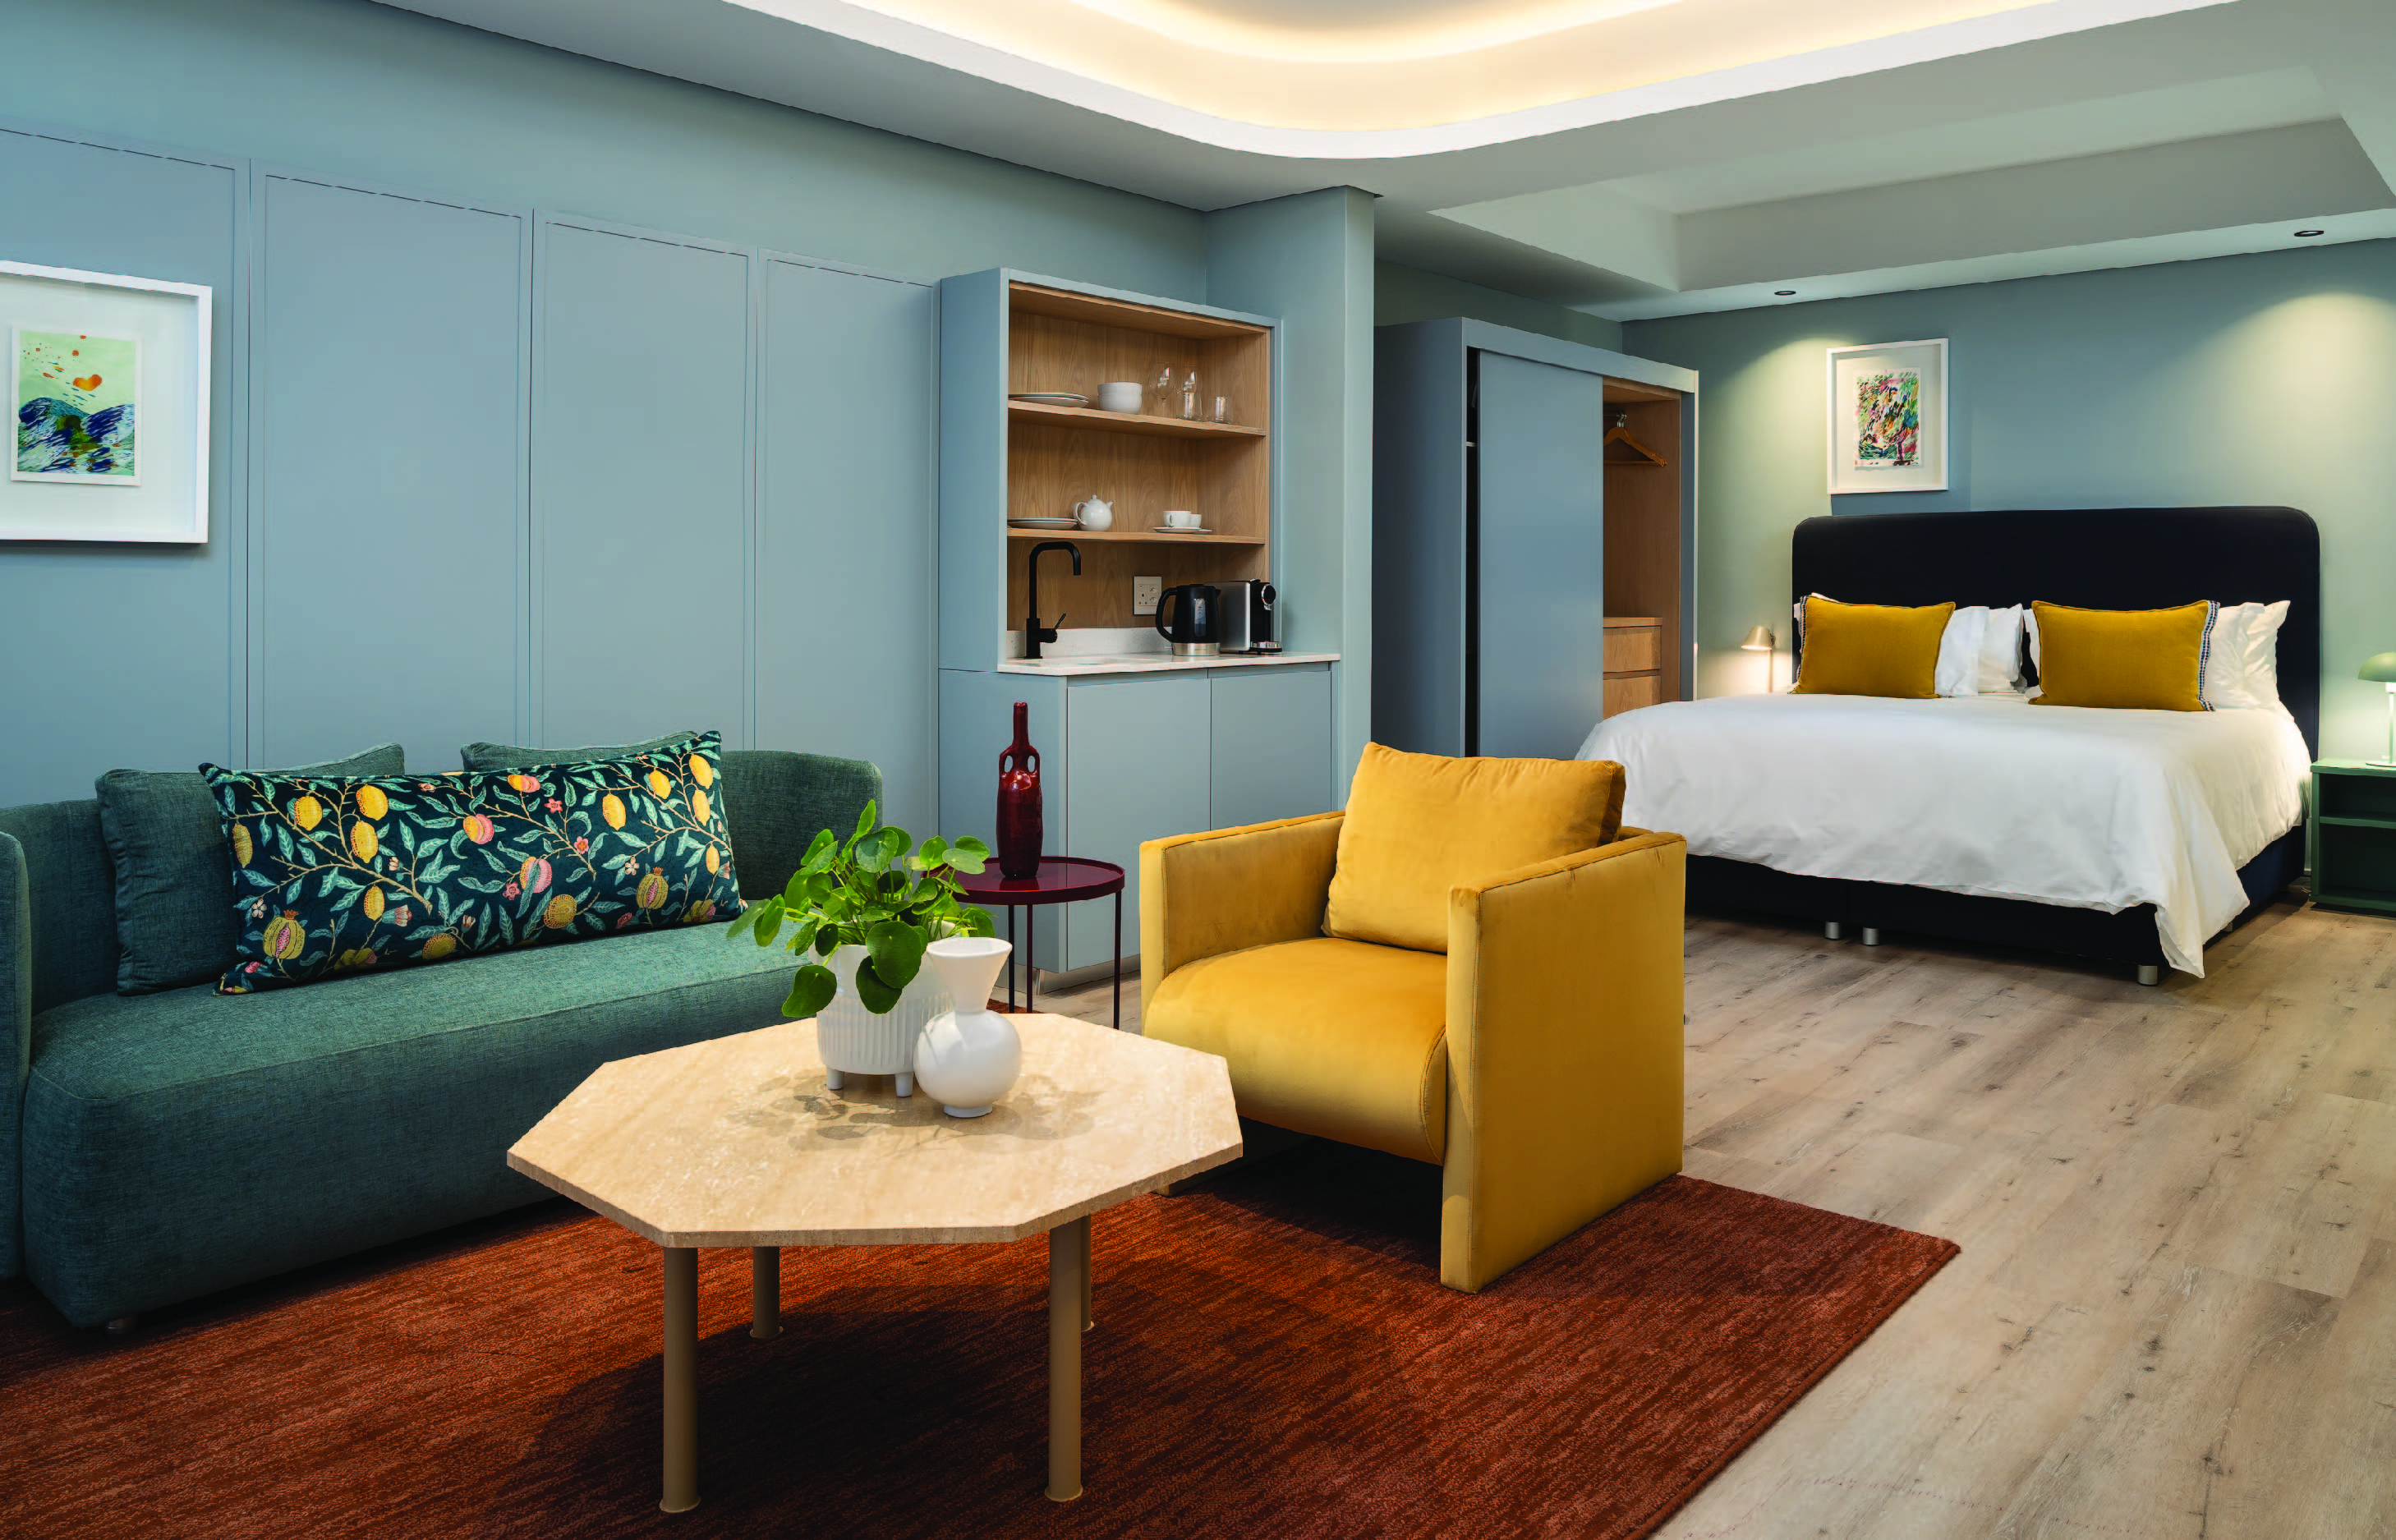 Home Suites The Quarter Cape Town hotel promotion hospitality luxe up living stylish comfort  local travel